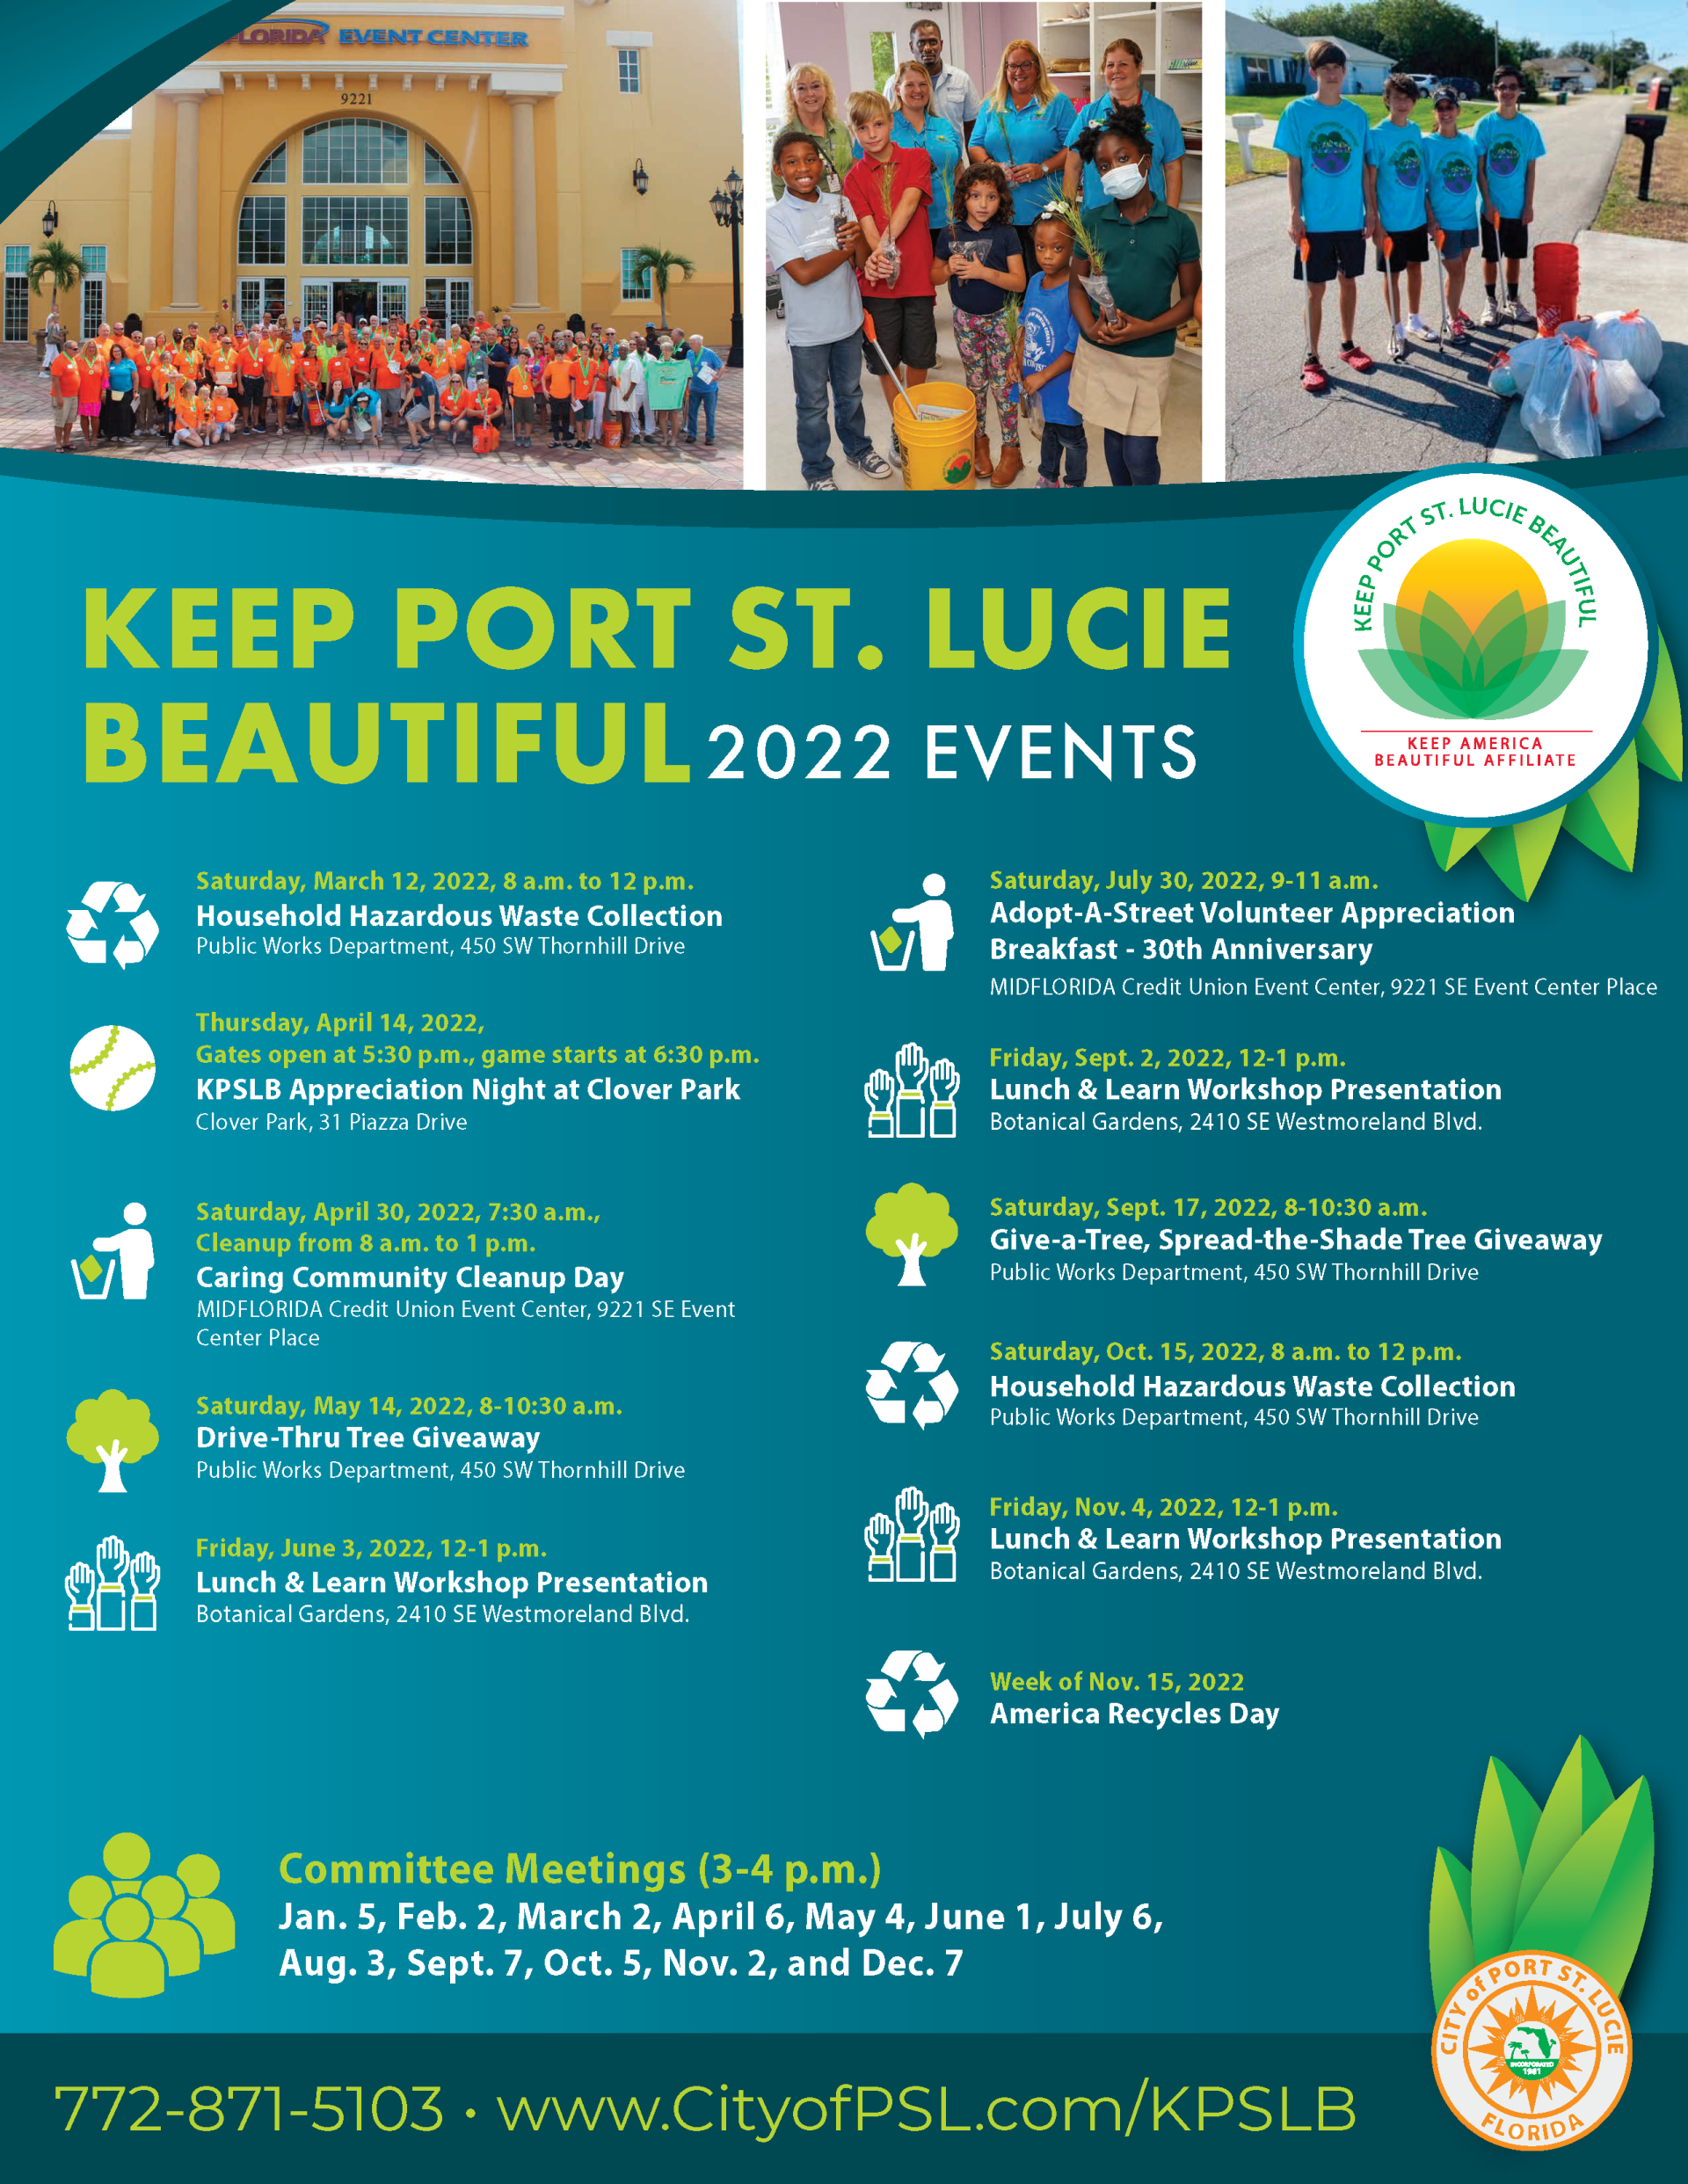 KPSLB Events Flyer